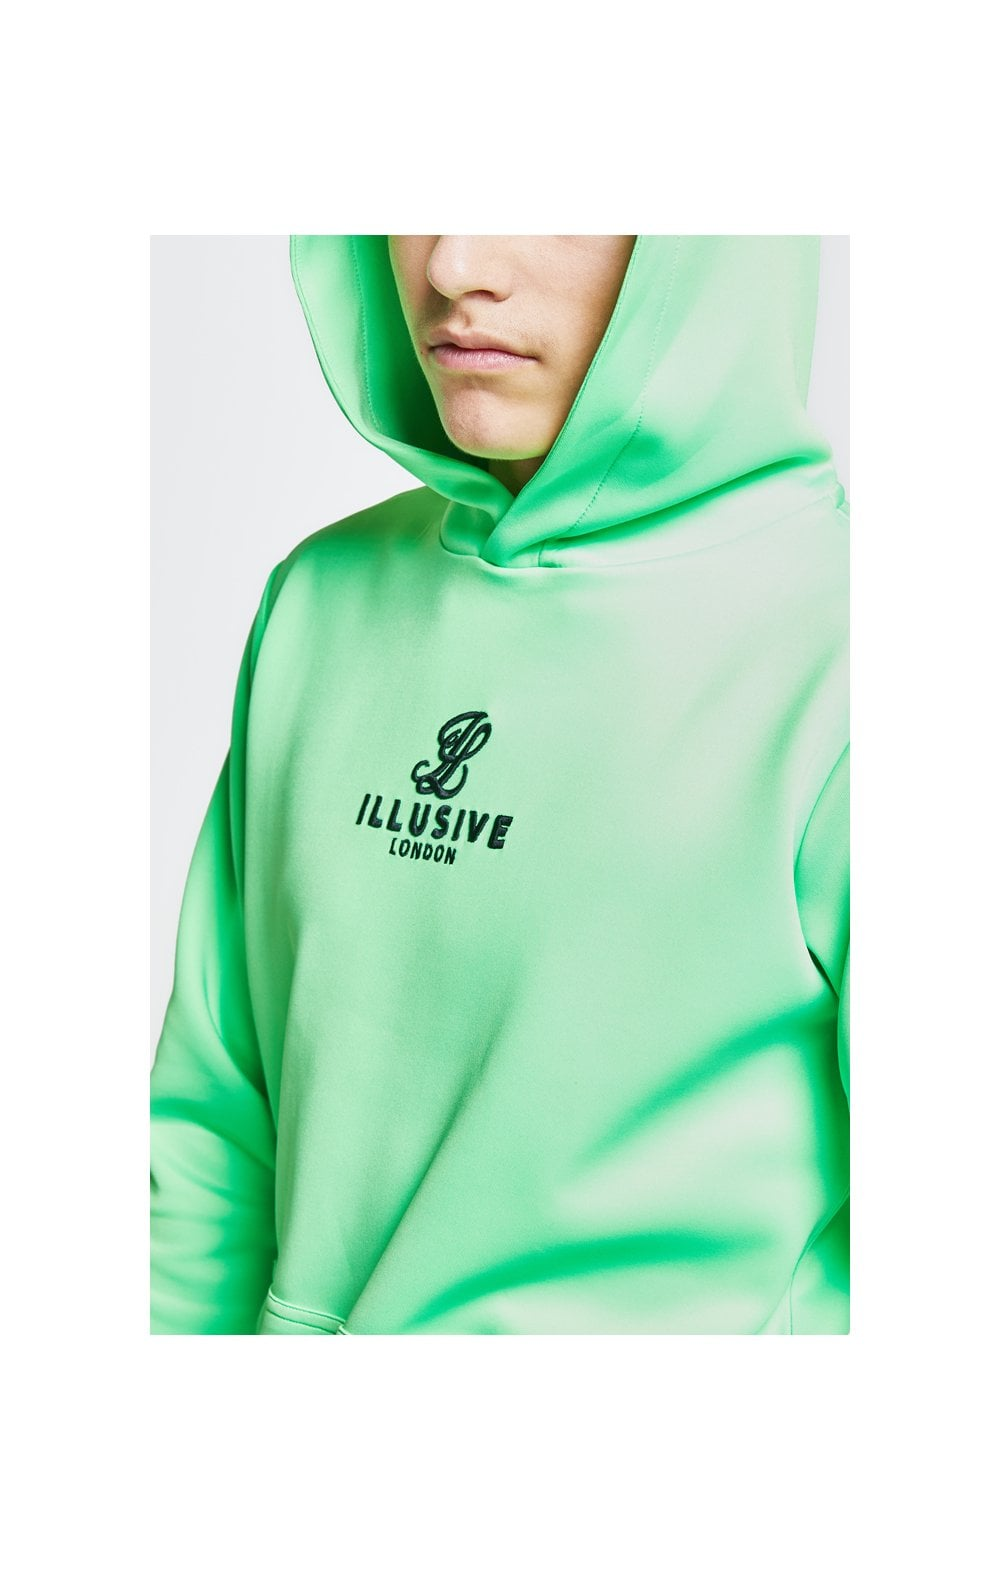 Load image into Gallery viewer, Illusive London Taped Overhead Hoodie - Neon Green (1)